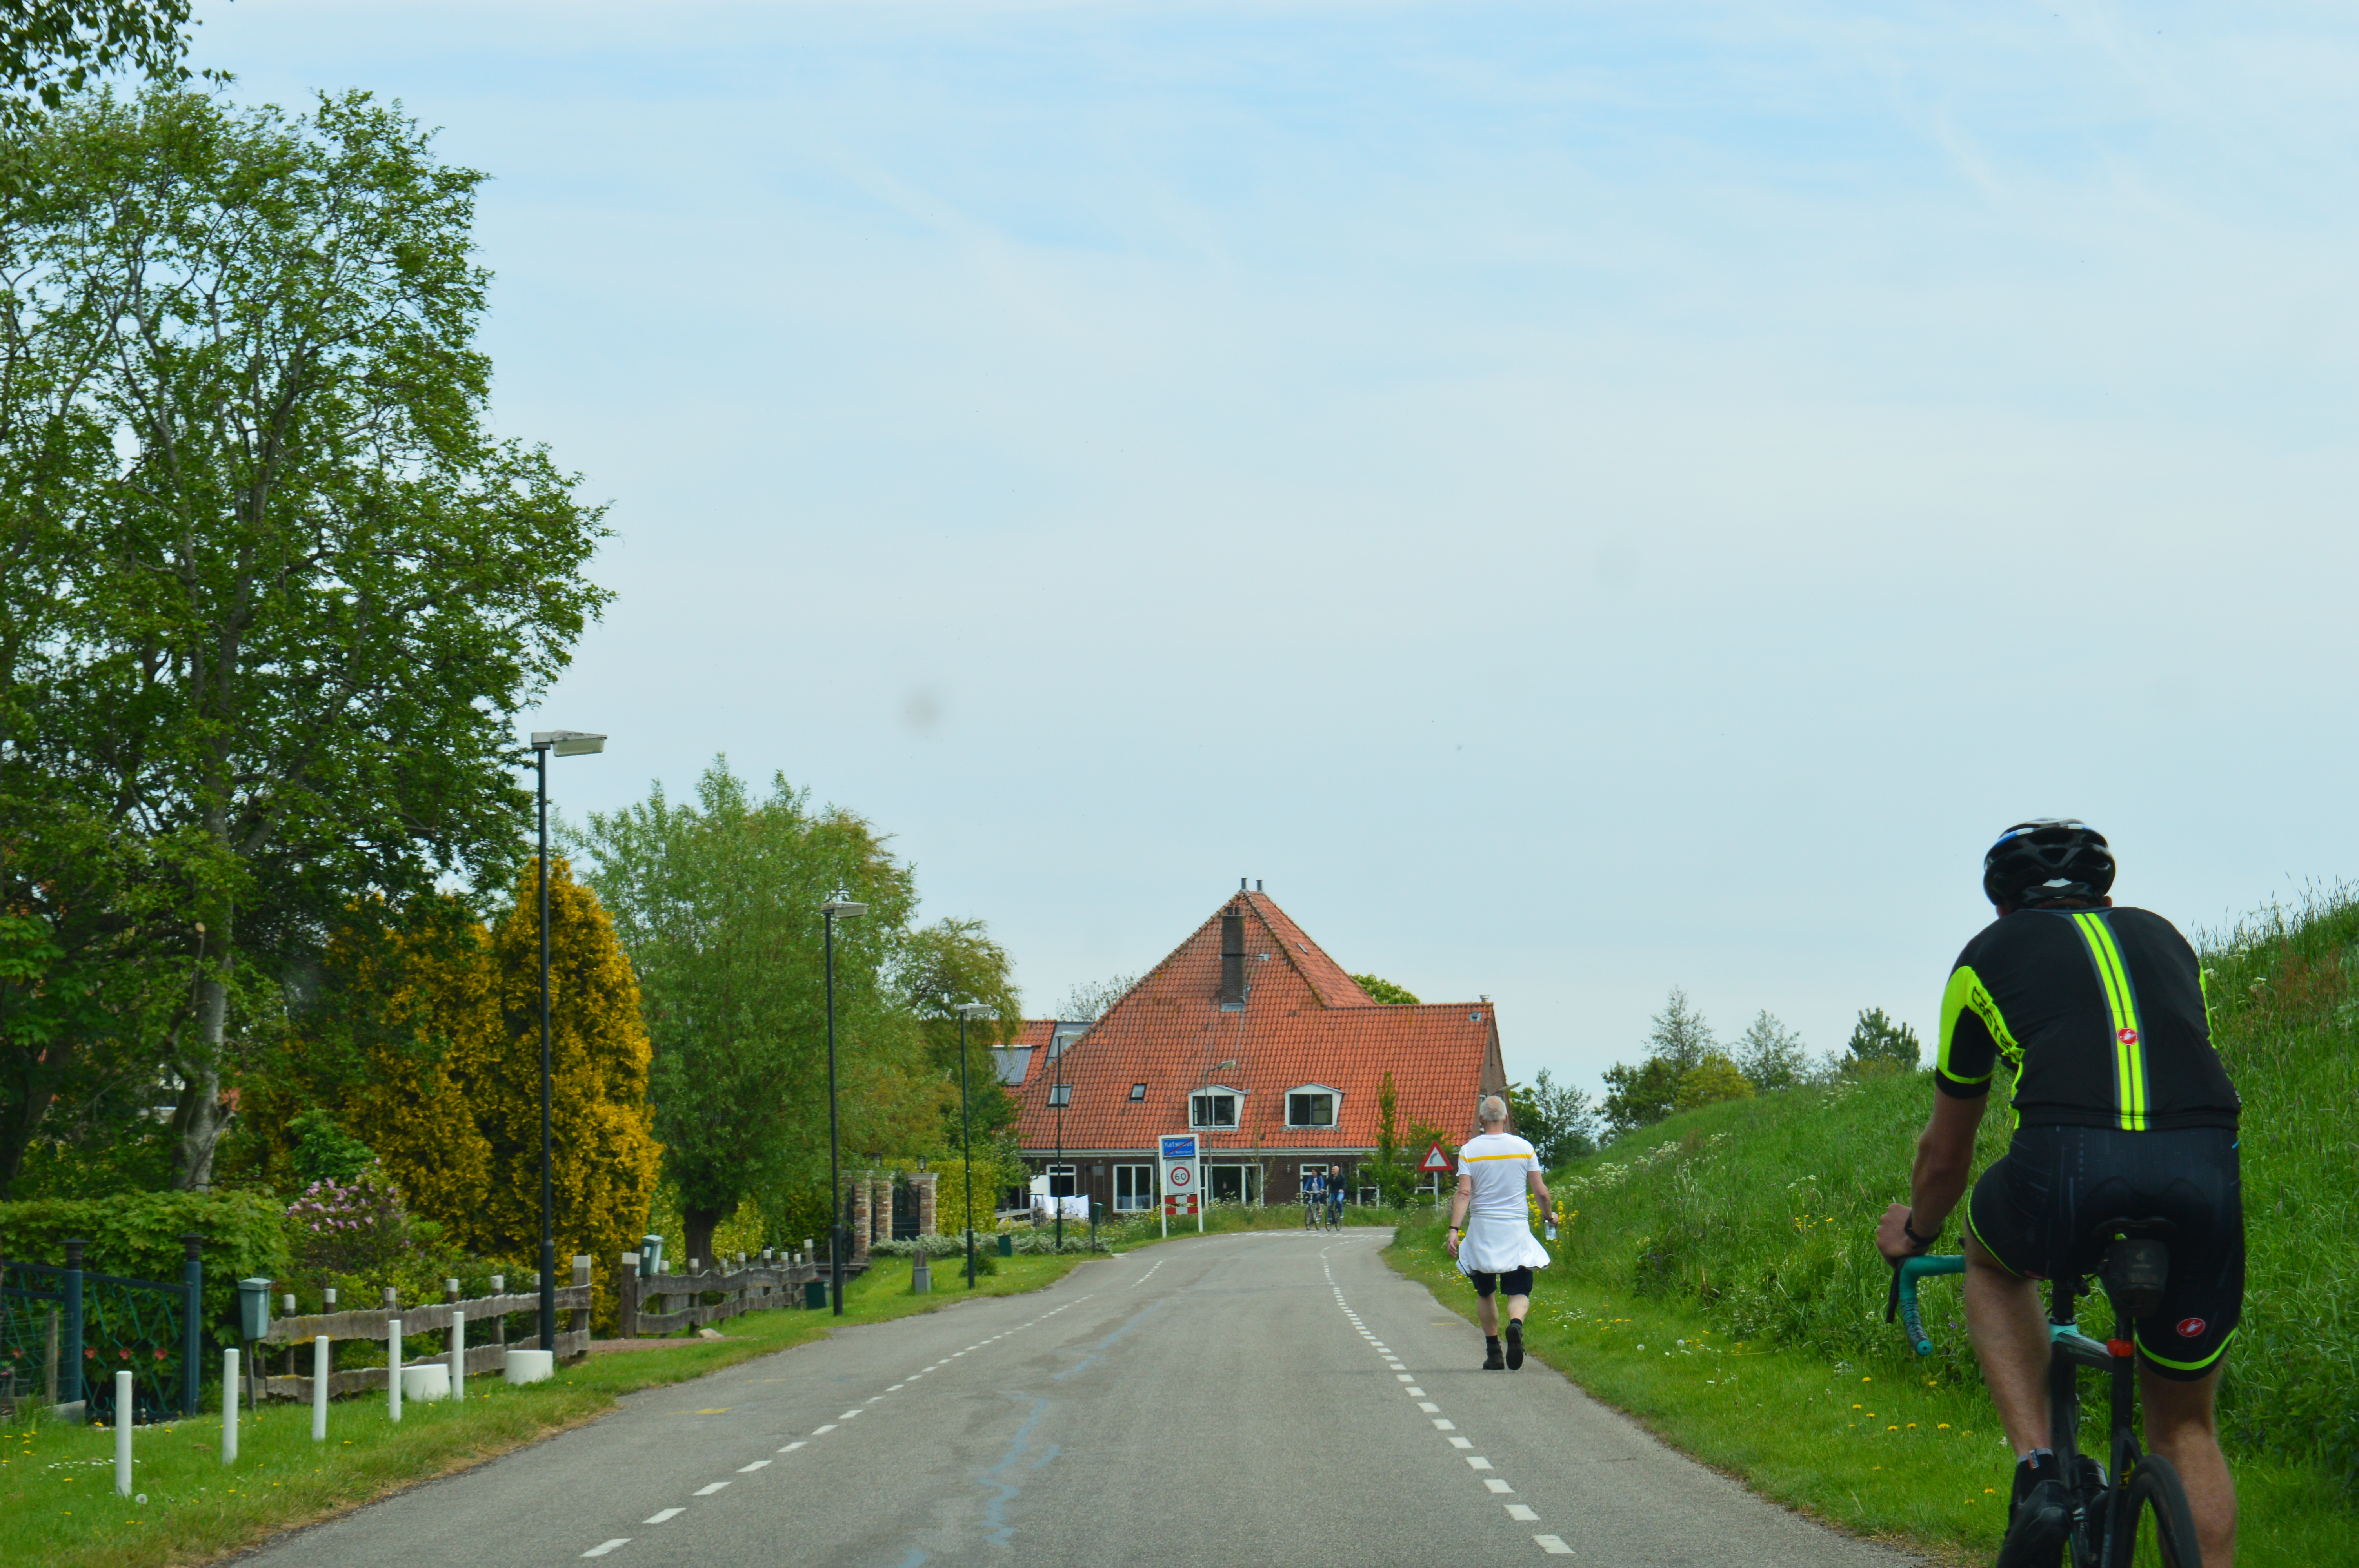 people walking and biking on the road in a small village in holland